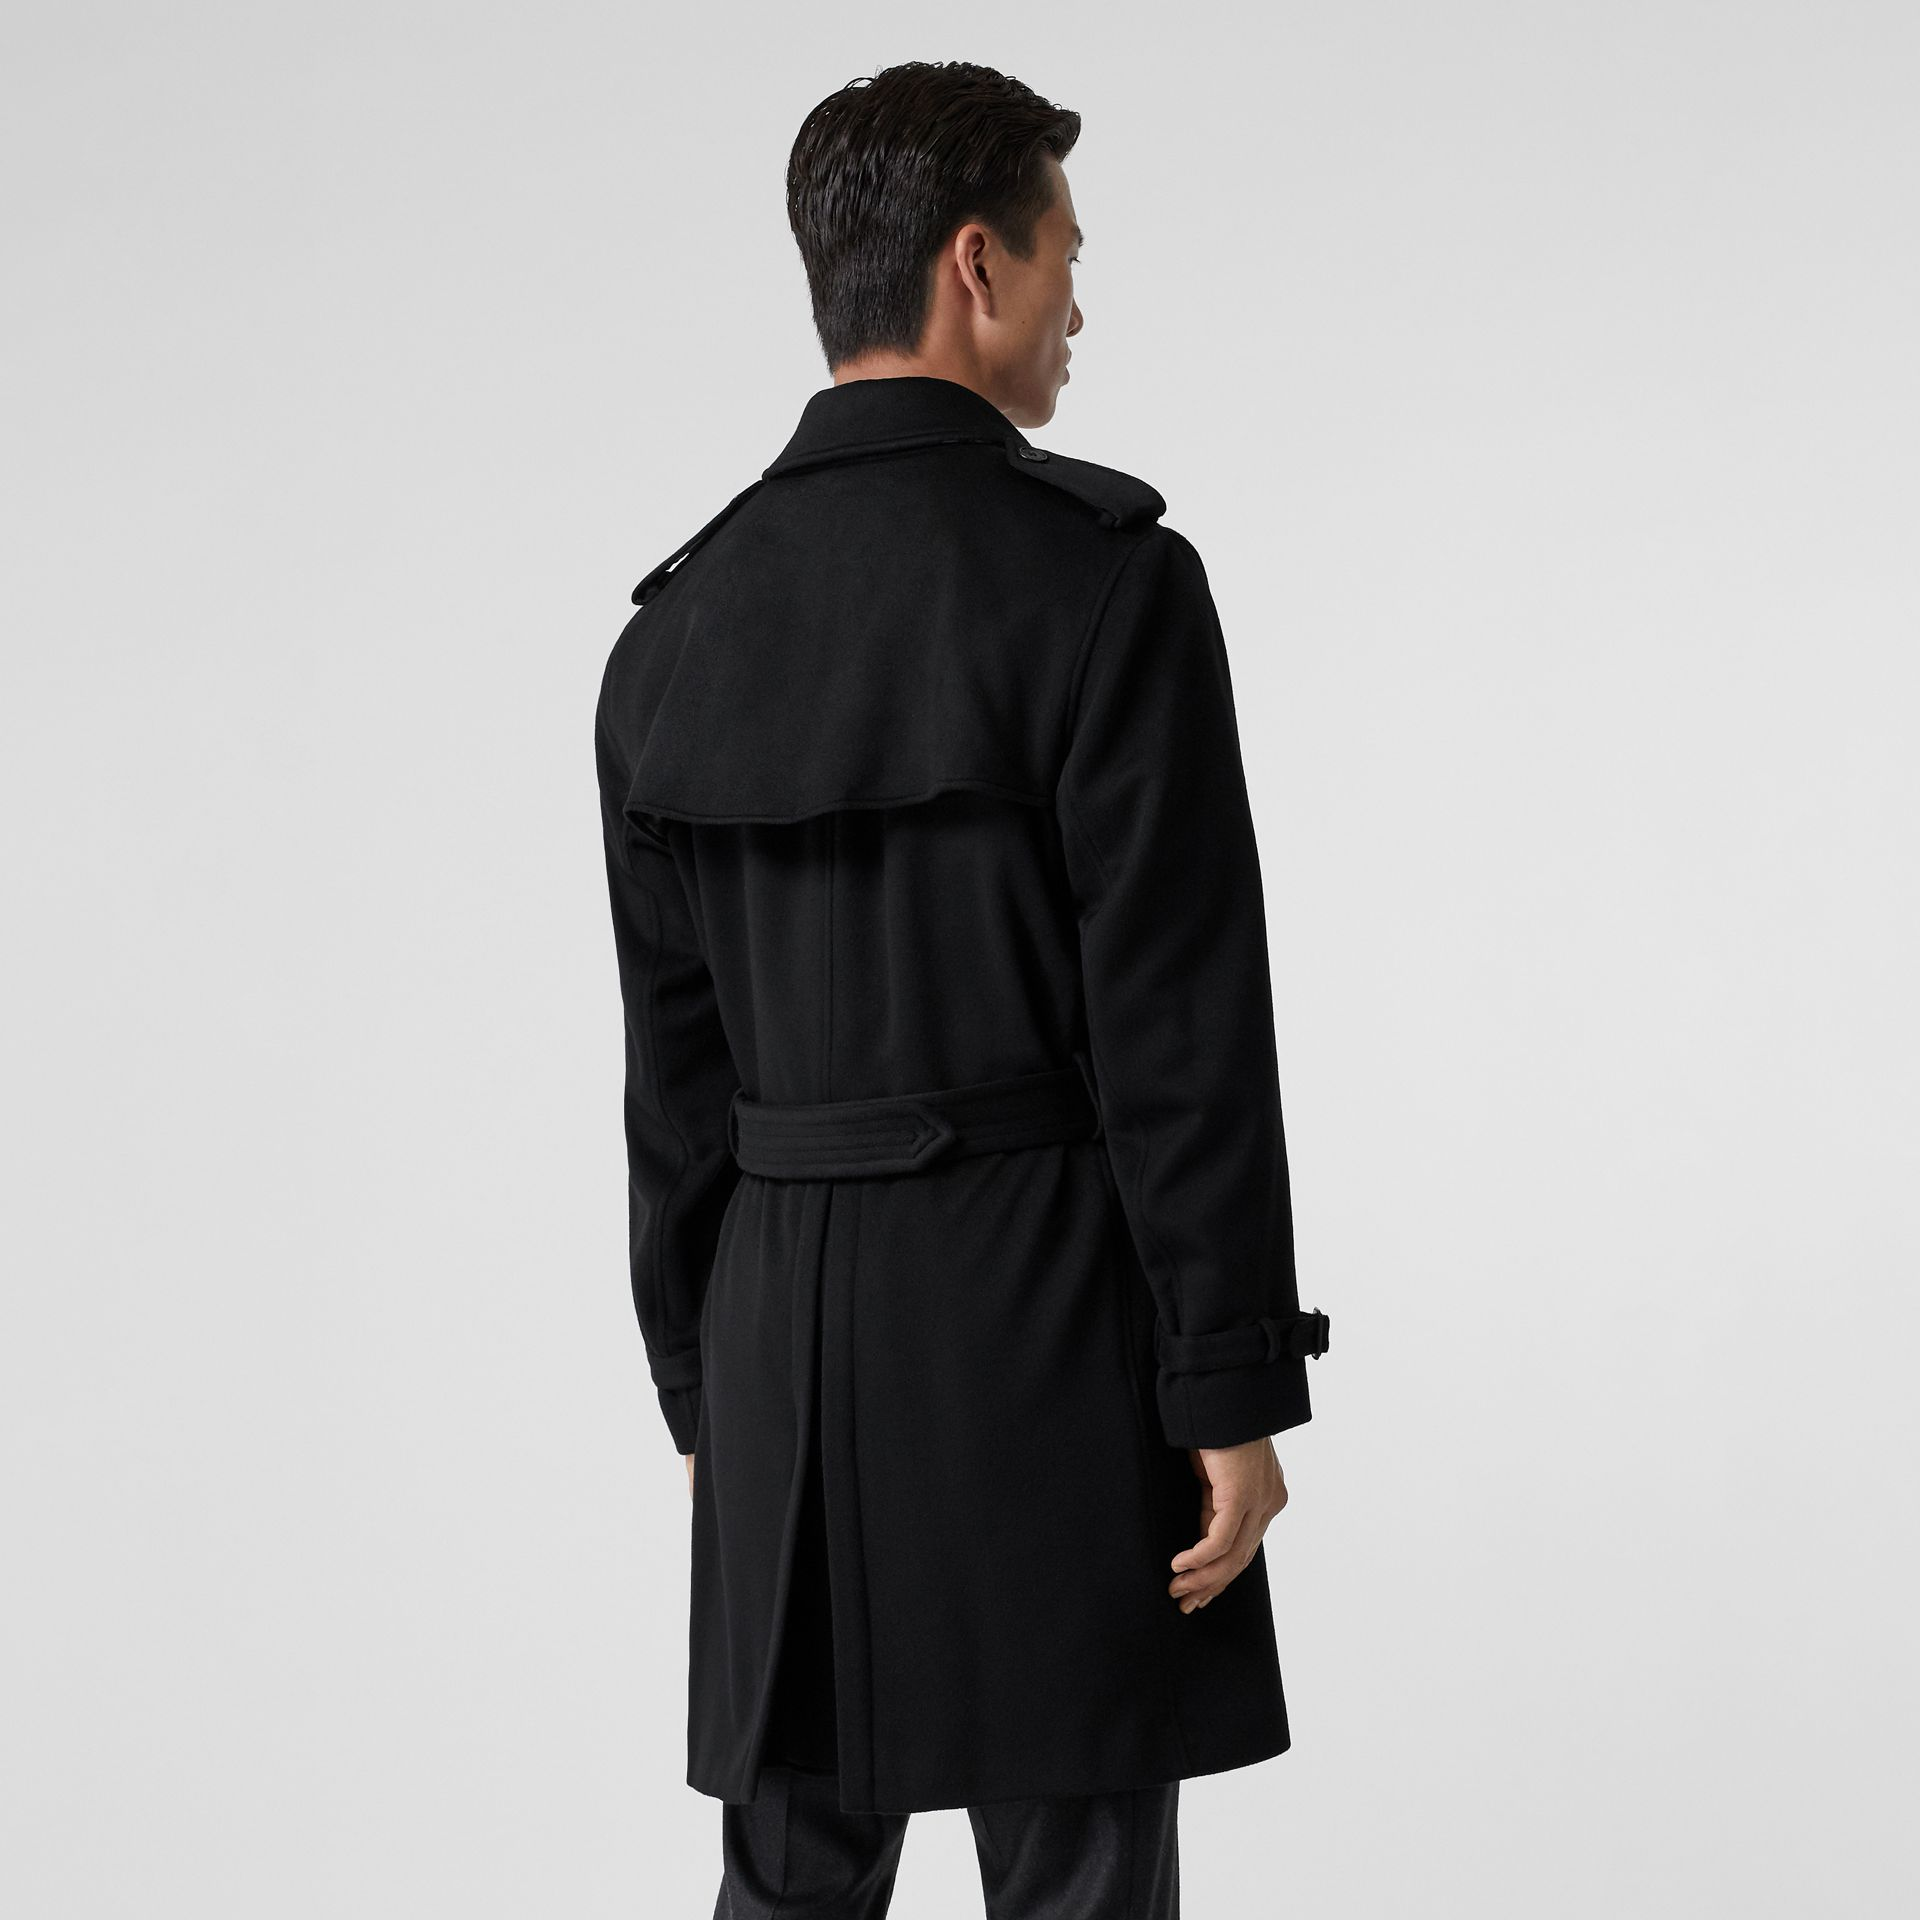 Cashmere Trench Coat in Black - Men | Burberry United Kingdom - gallery image 2